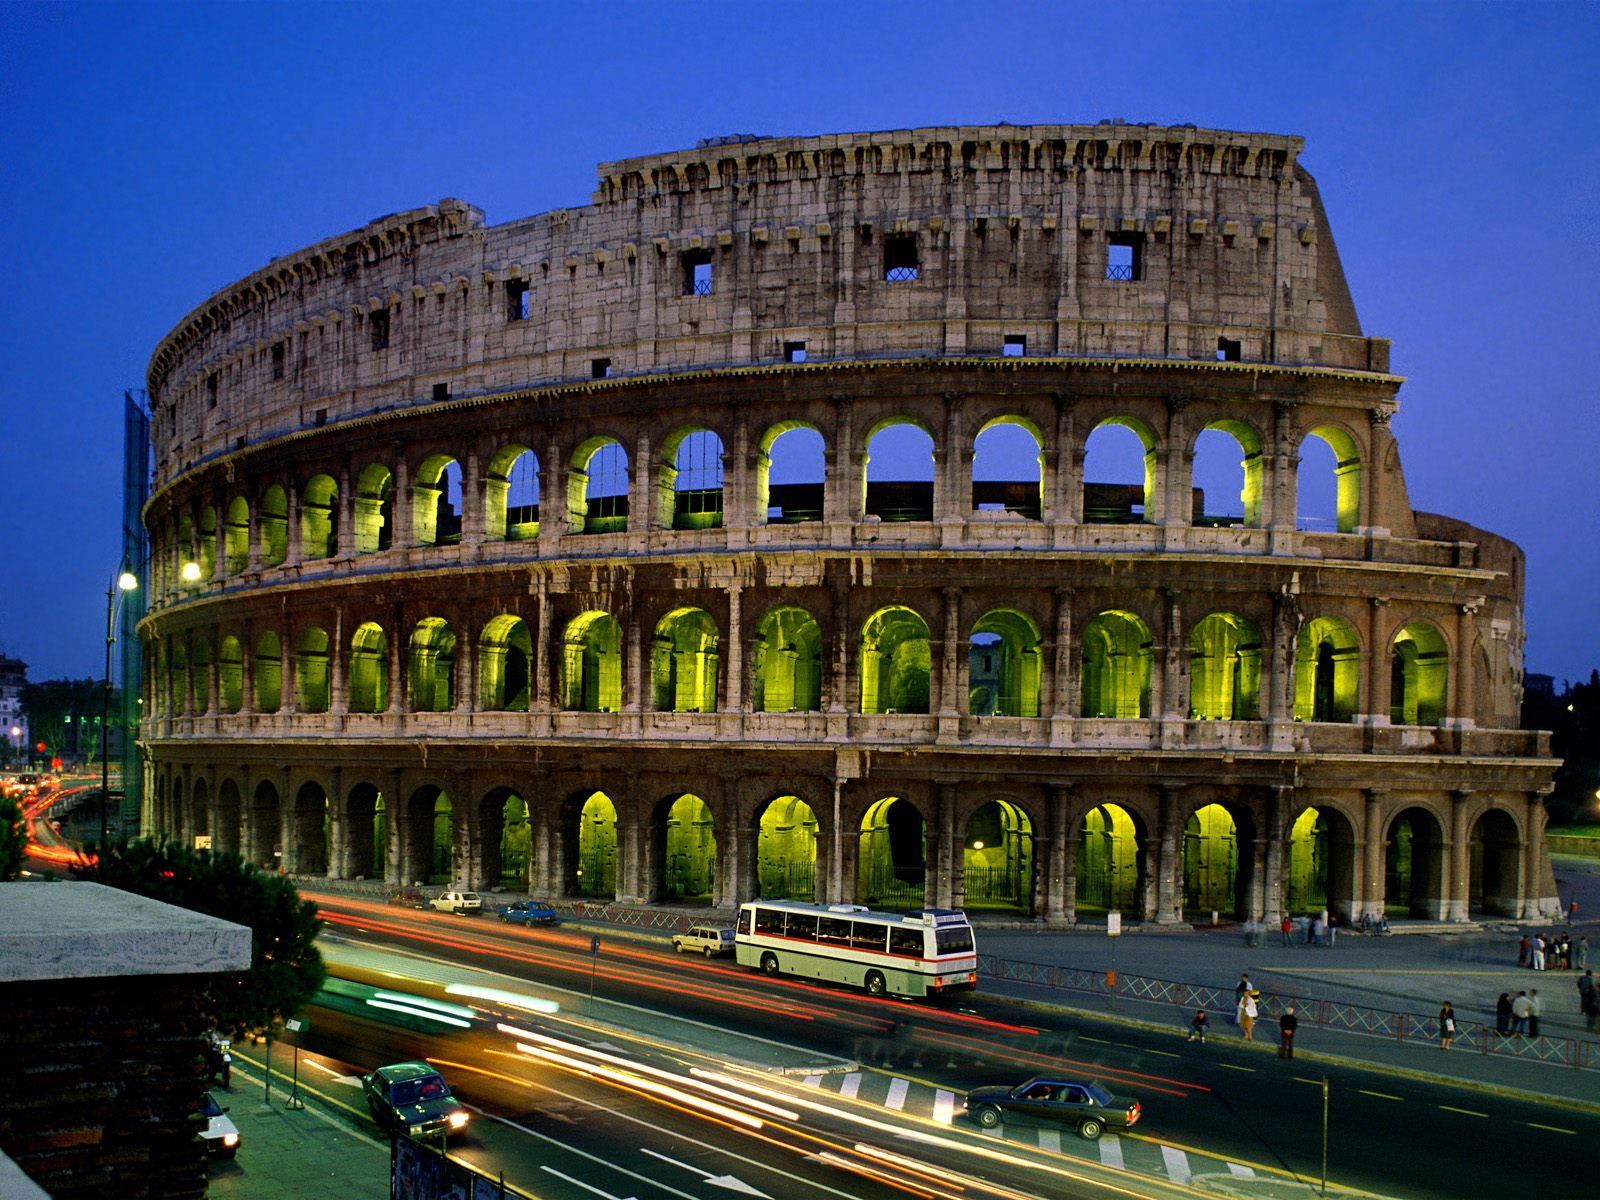 Wonders-of-the-world-Coliseum-wallpaper-Rome-Italy